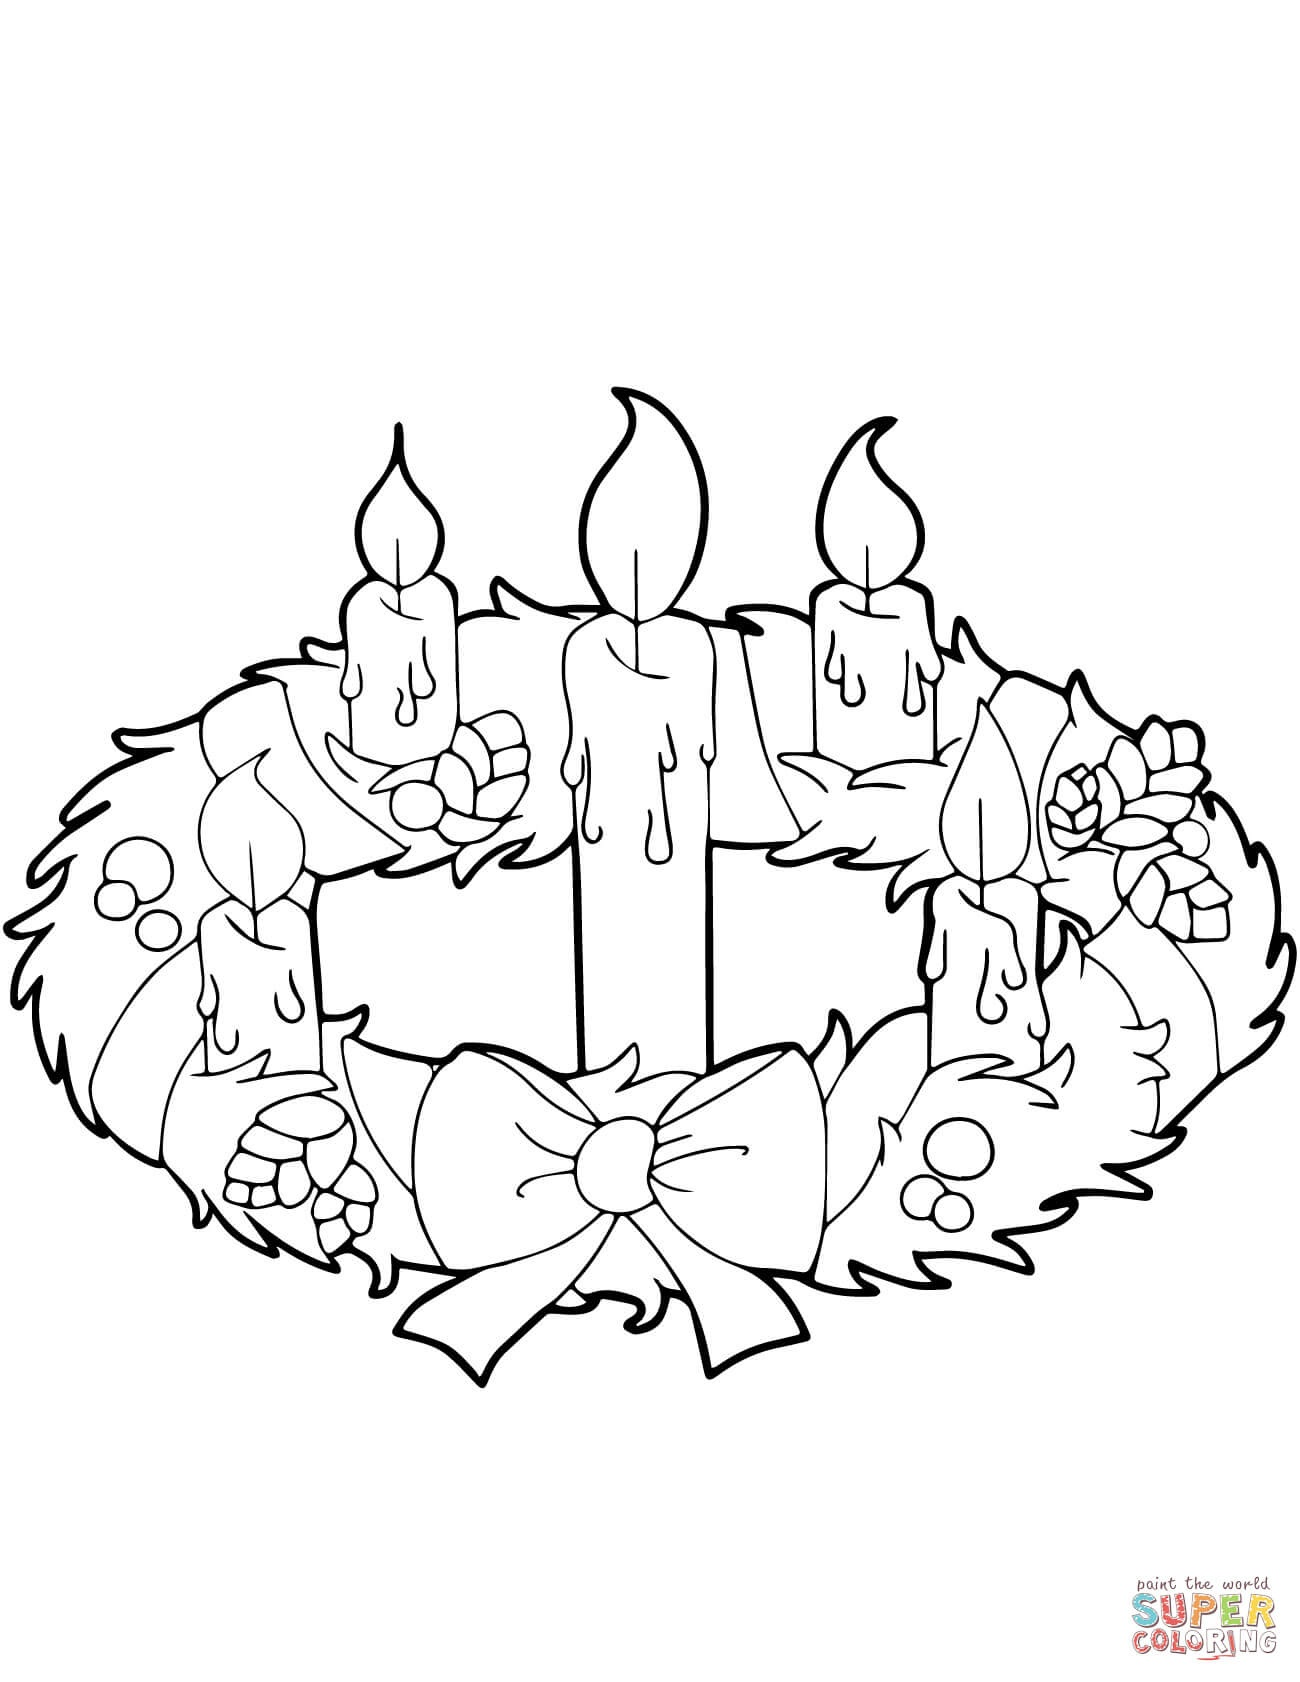 Advent Wreath And Candles Coloring Page | Free Printable Coloring Pages - Free Printable Advent Wreath